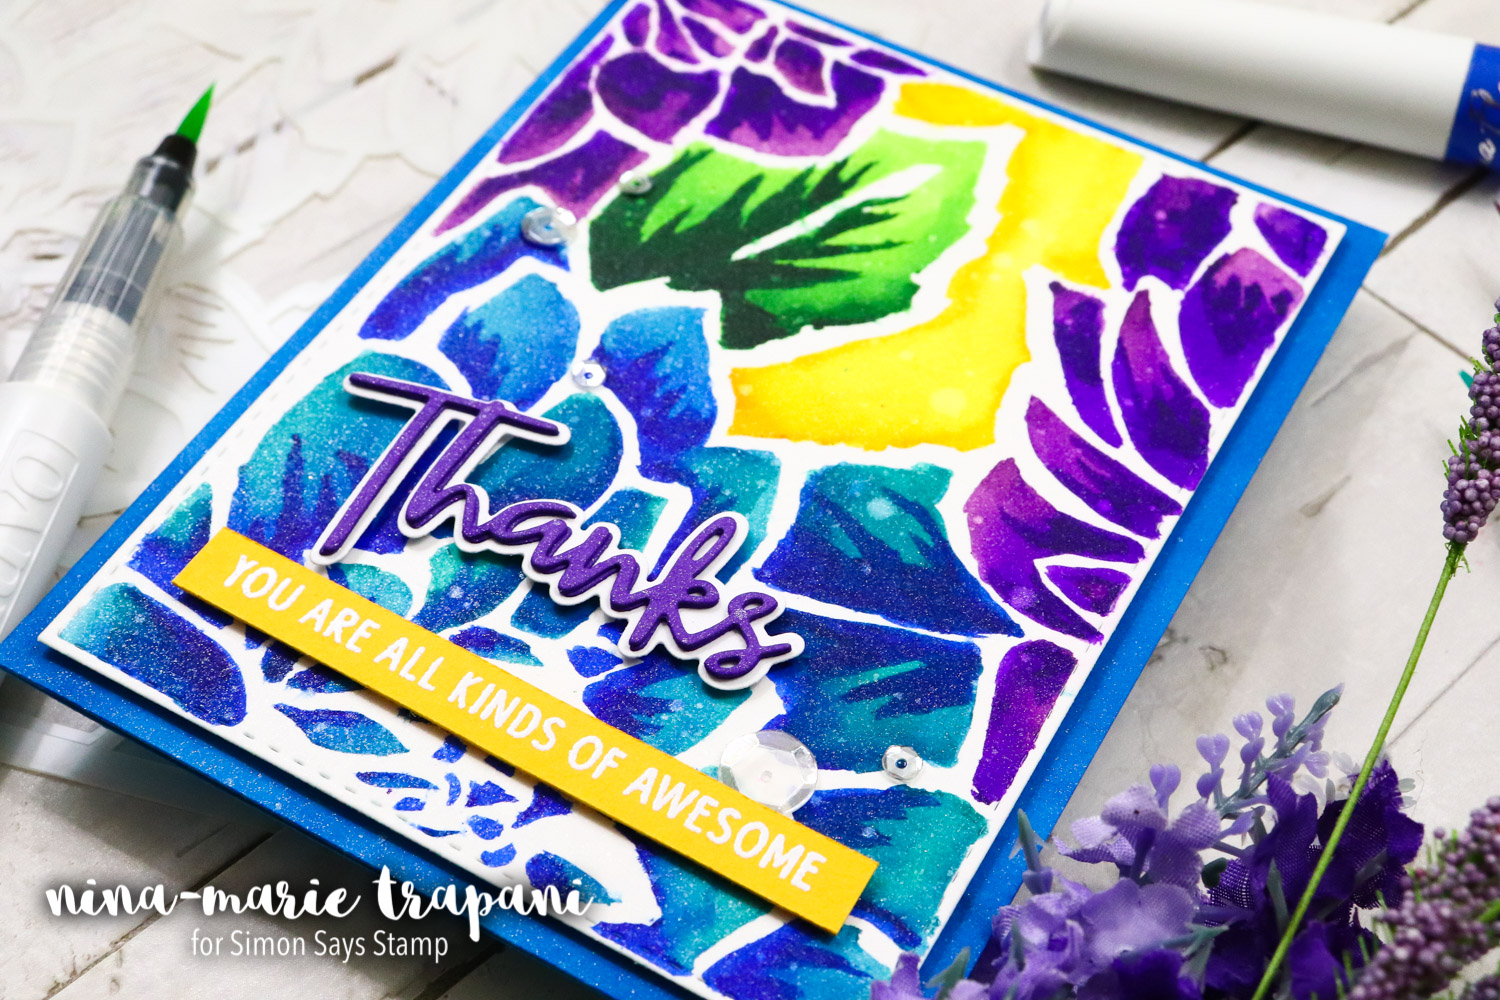 Studio Monday with Nina-Marie: Stenciling 5 Ways